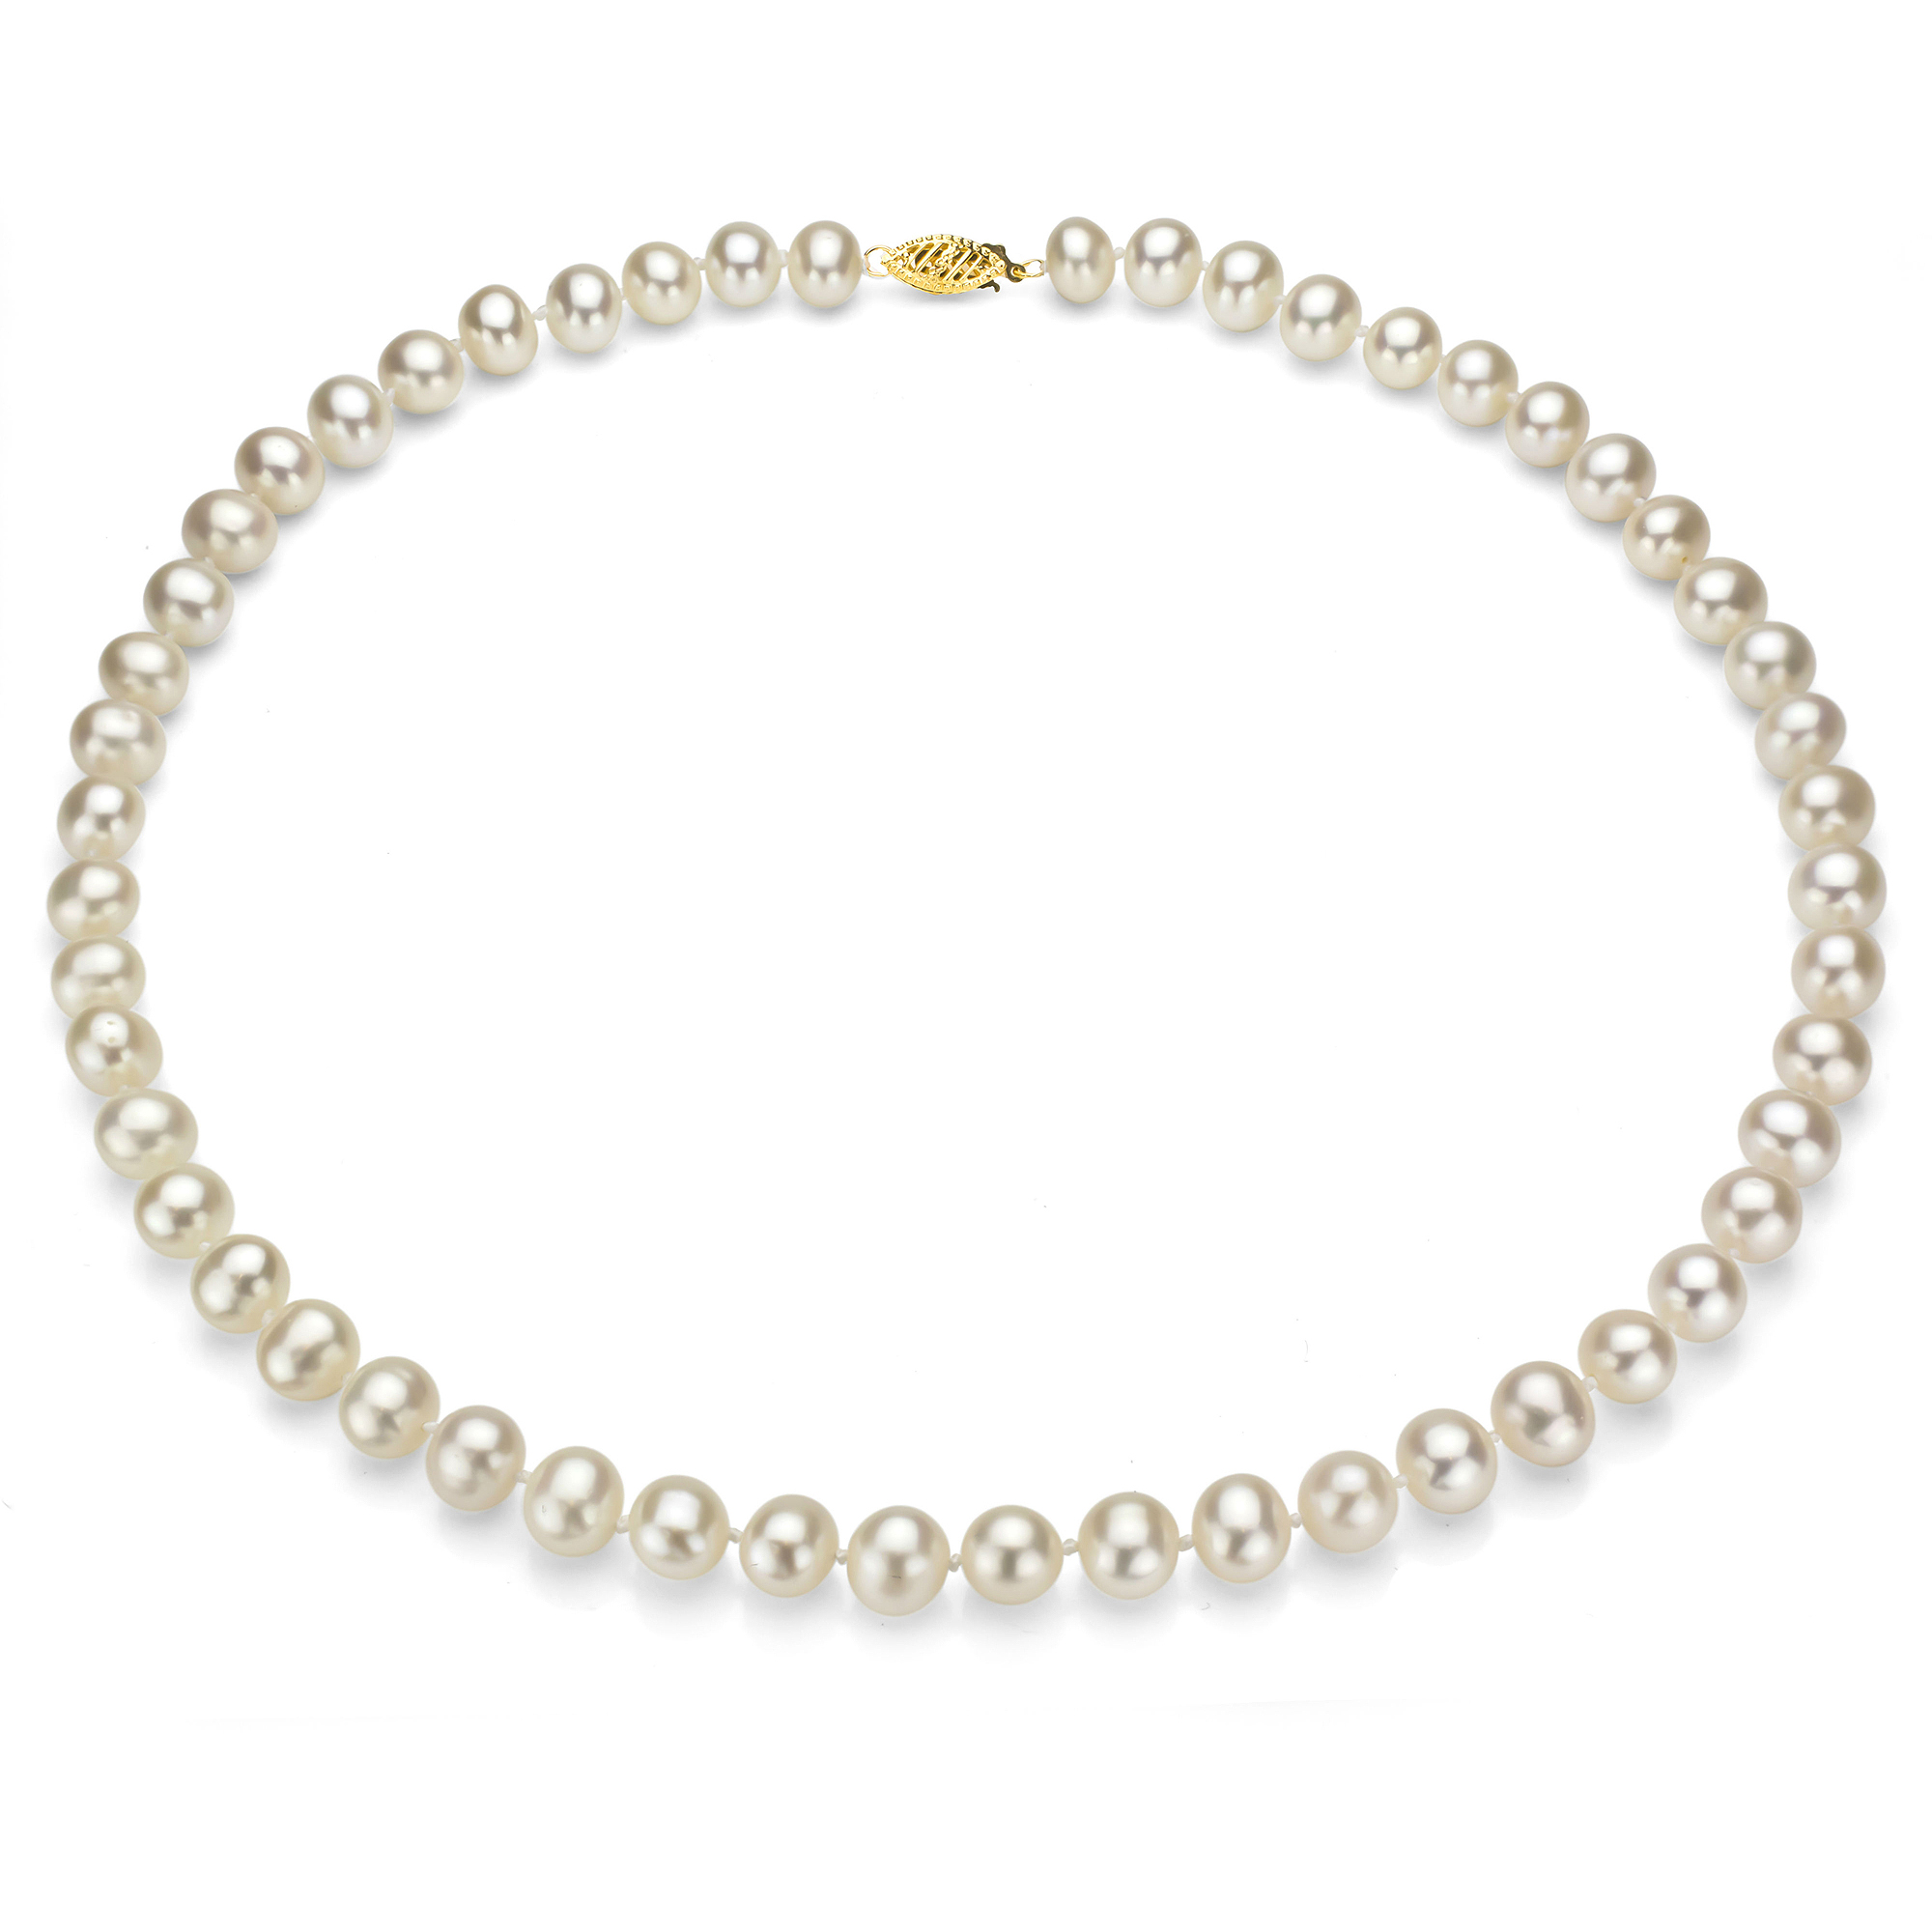 """Ultra-Luster 5-6mm White Genuine Cultured Freshwater Pearl 18"""" Necklace and 14kt Yellow Gold Filigree Clasp"""